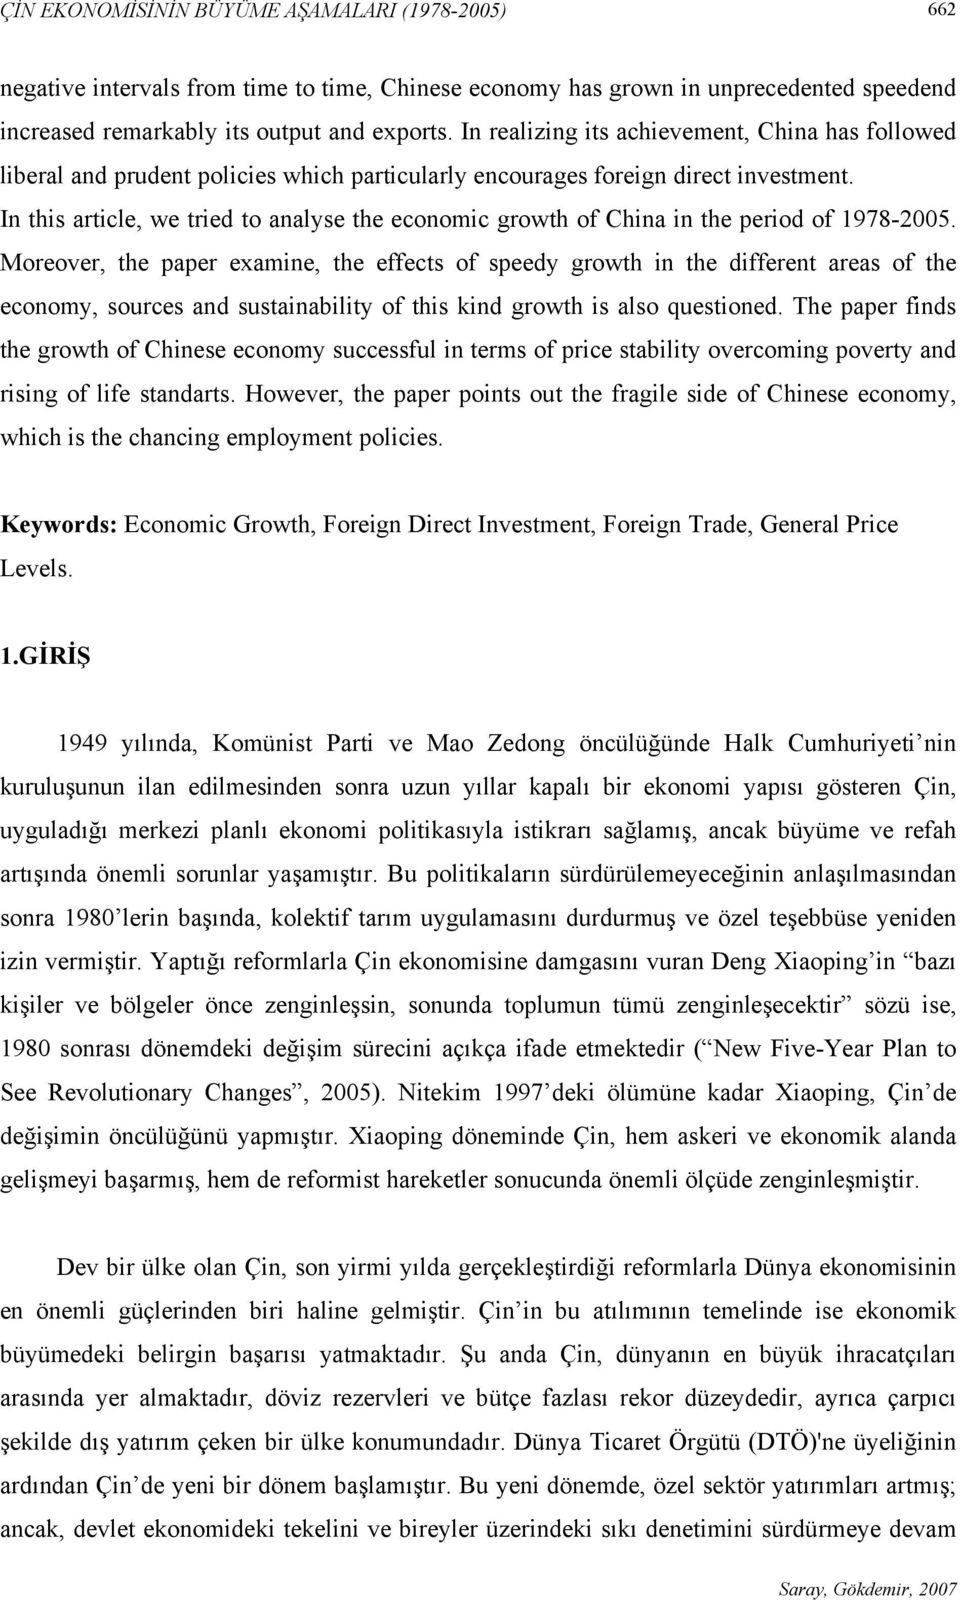 In this article, we tried to analyse the economic growth of China in the period of 1978-2005.